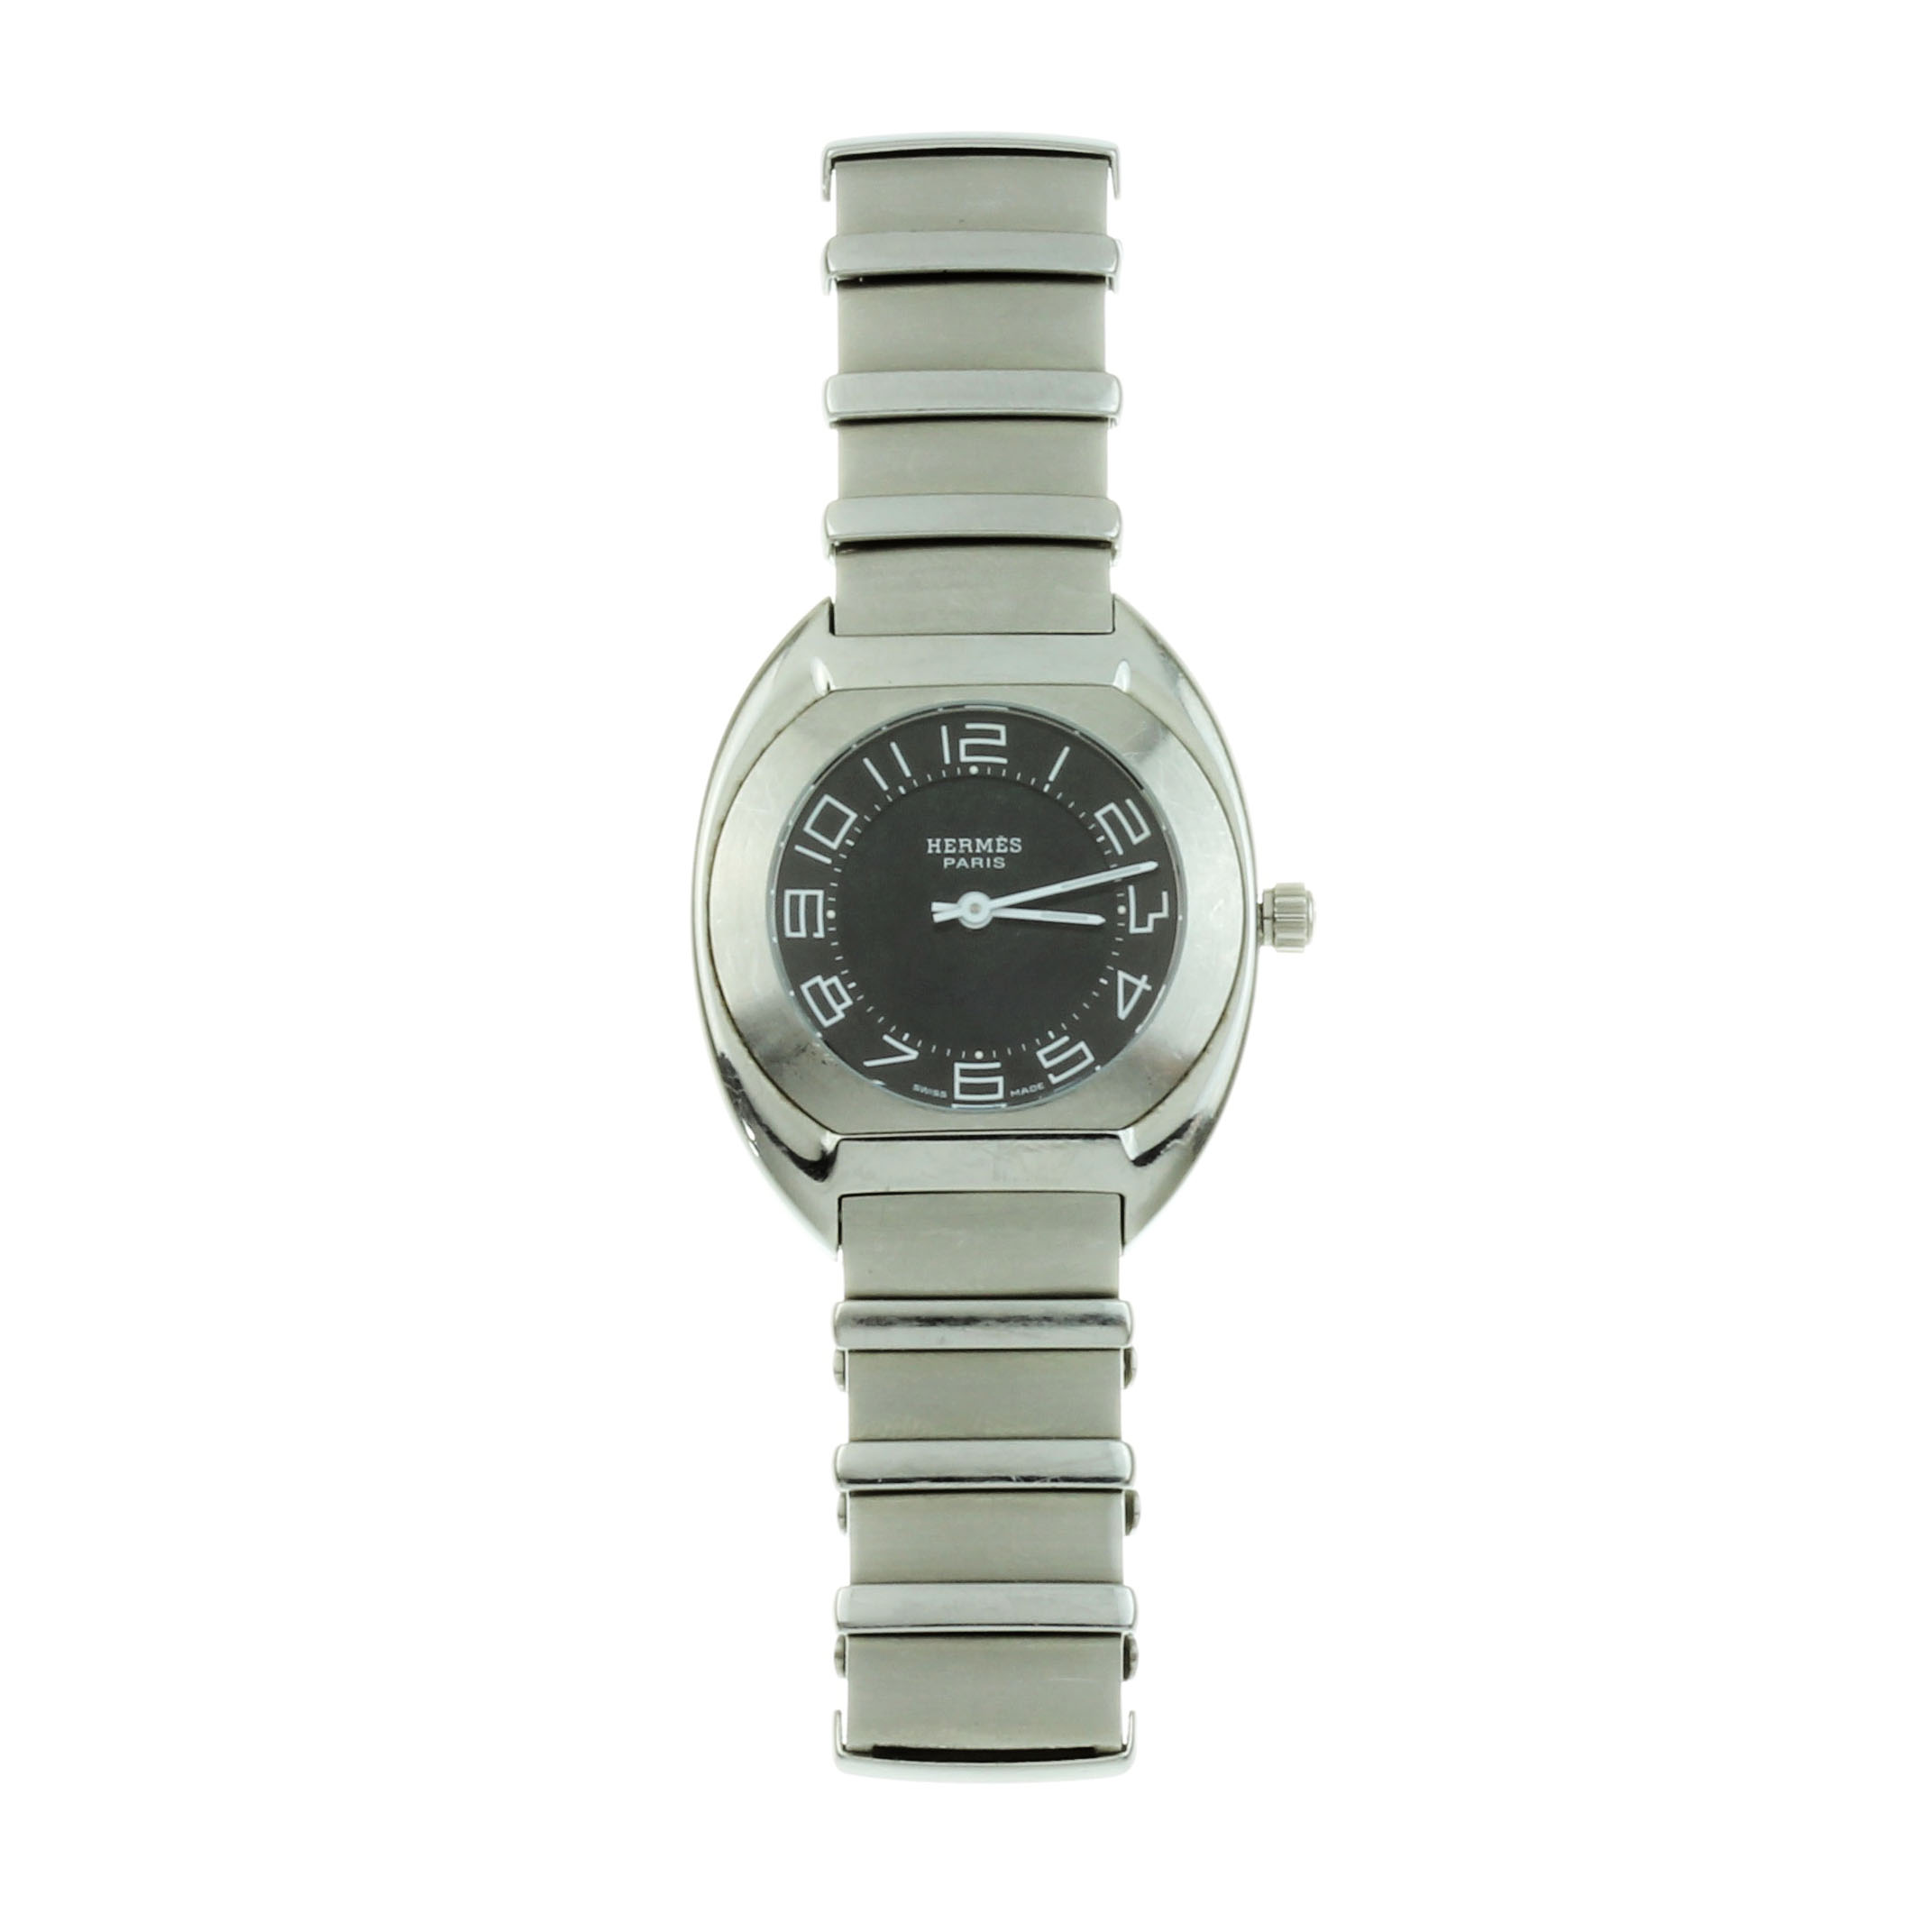 Los 31 - AN HERMES ESPACE LADIES WRIST WATCH in stainless steel, 31mm case, the dial black with white